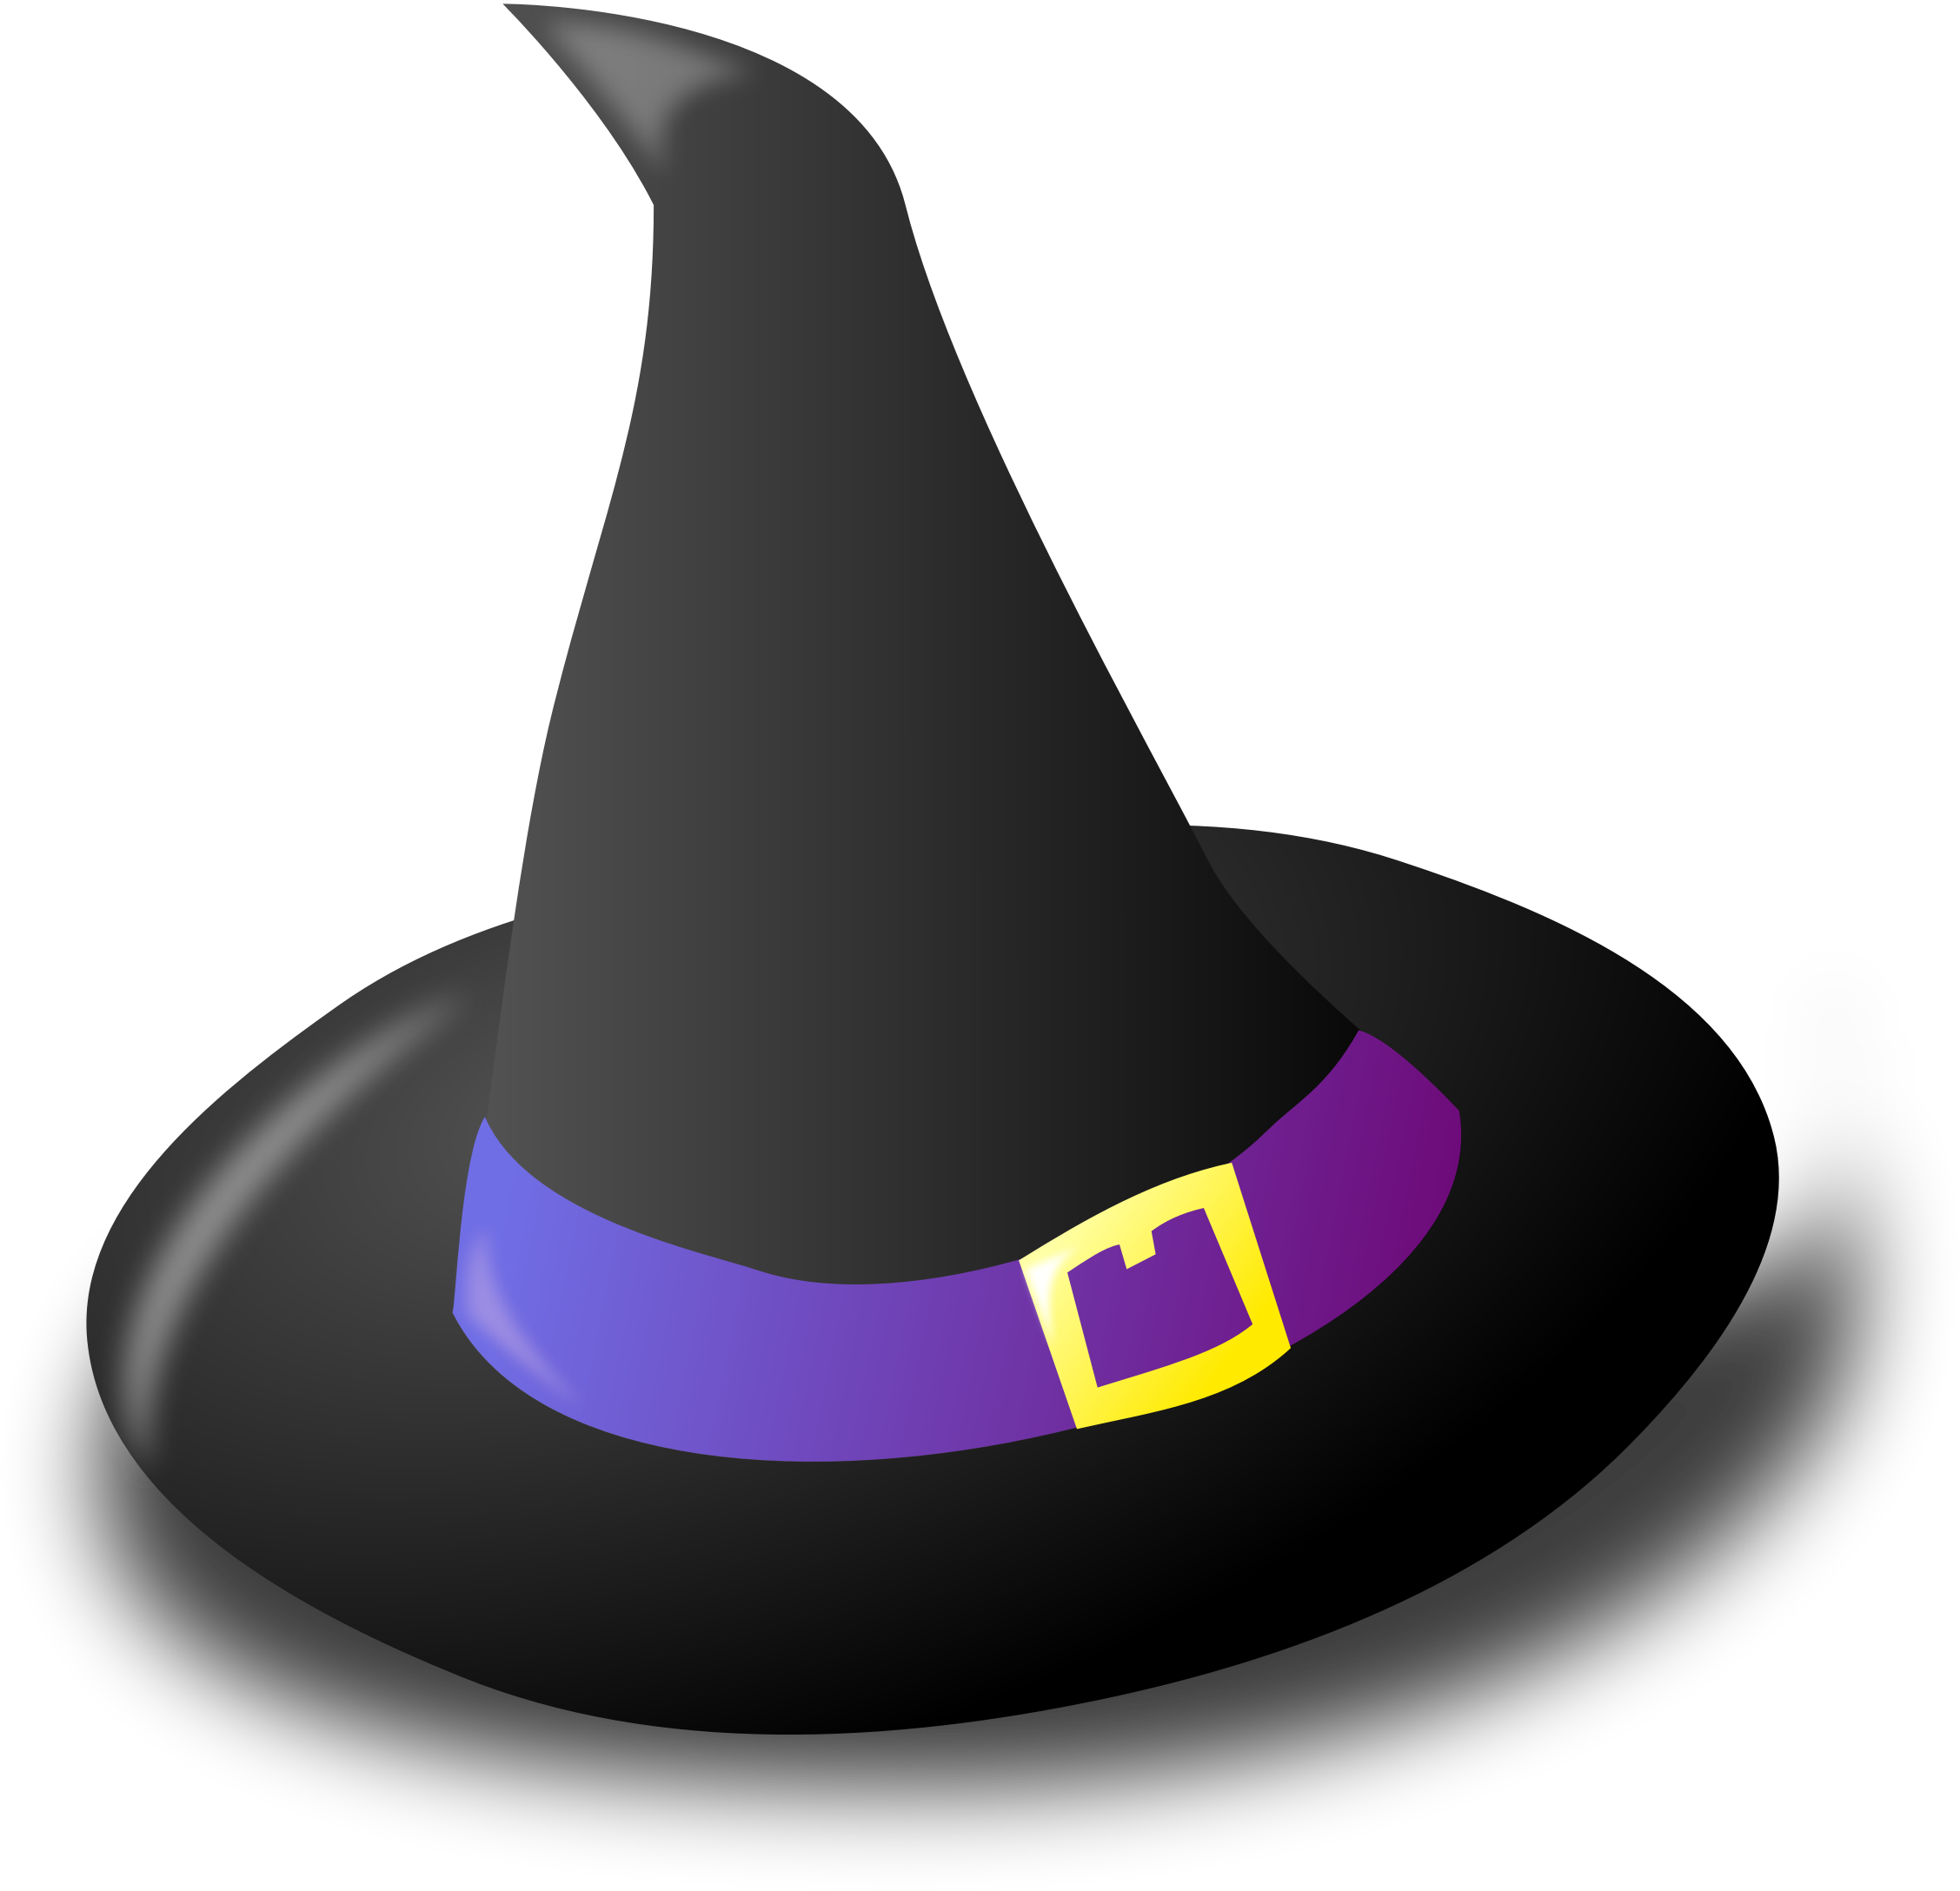 Black witch hat clipart.